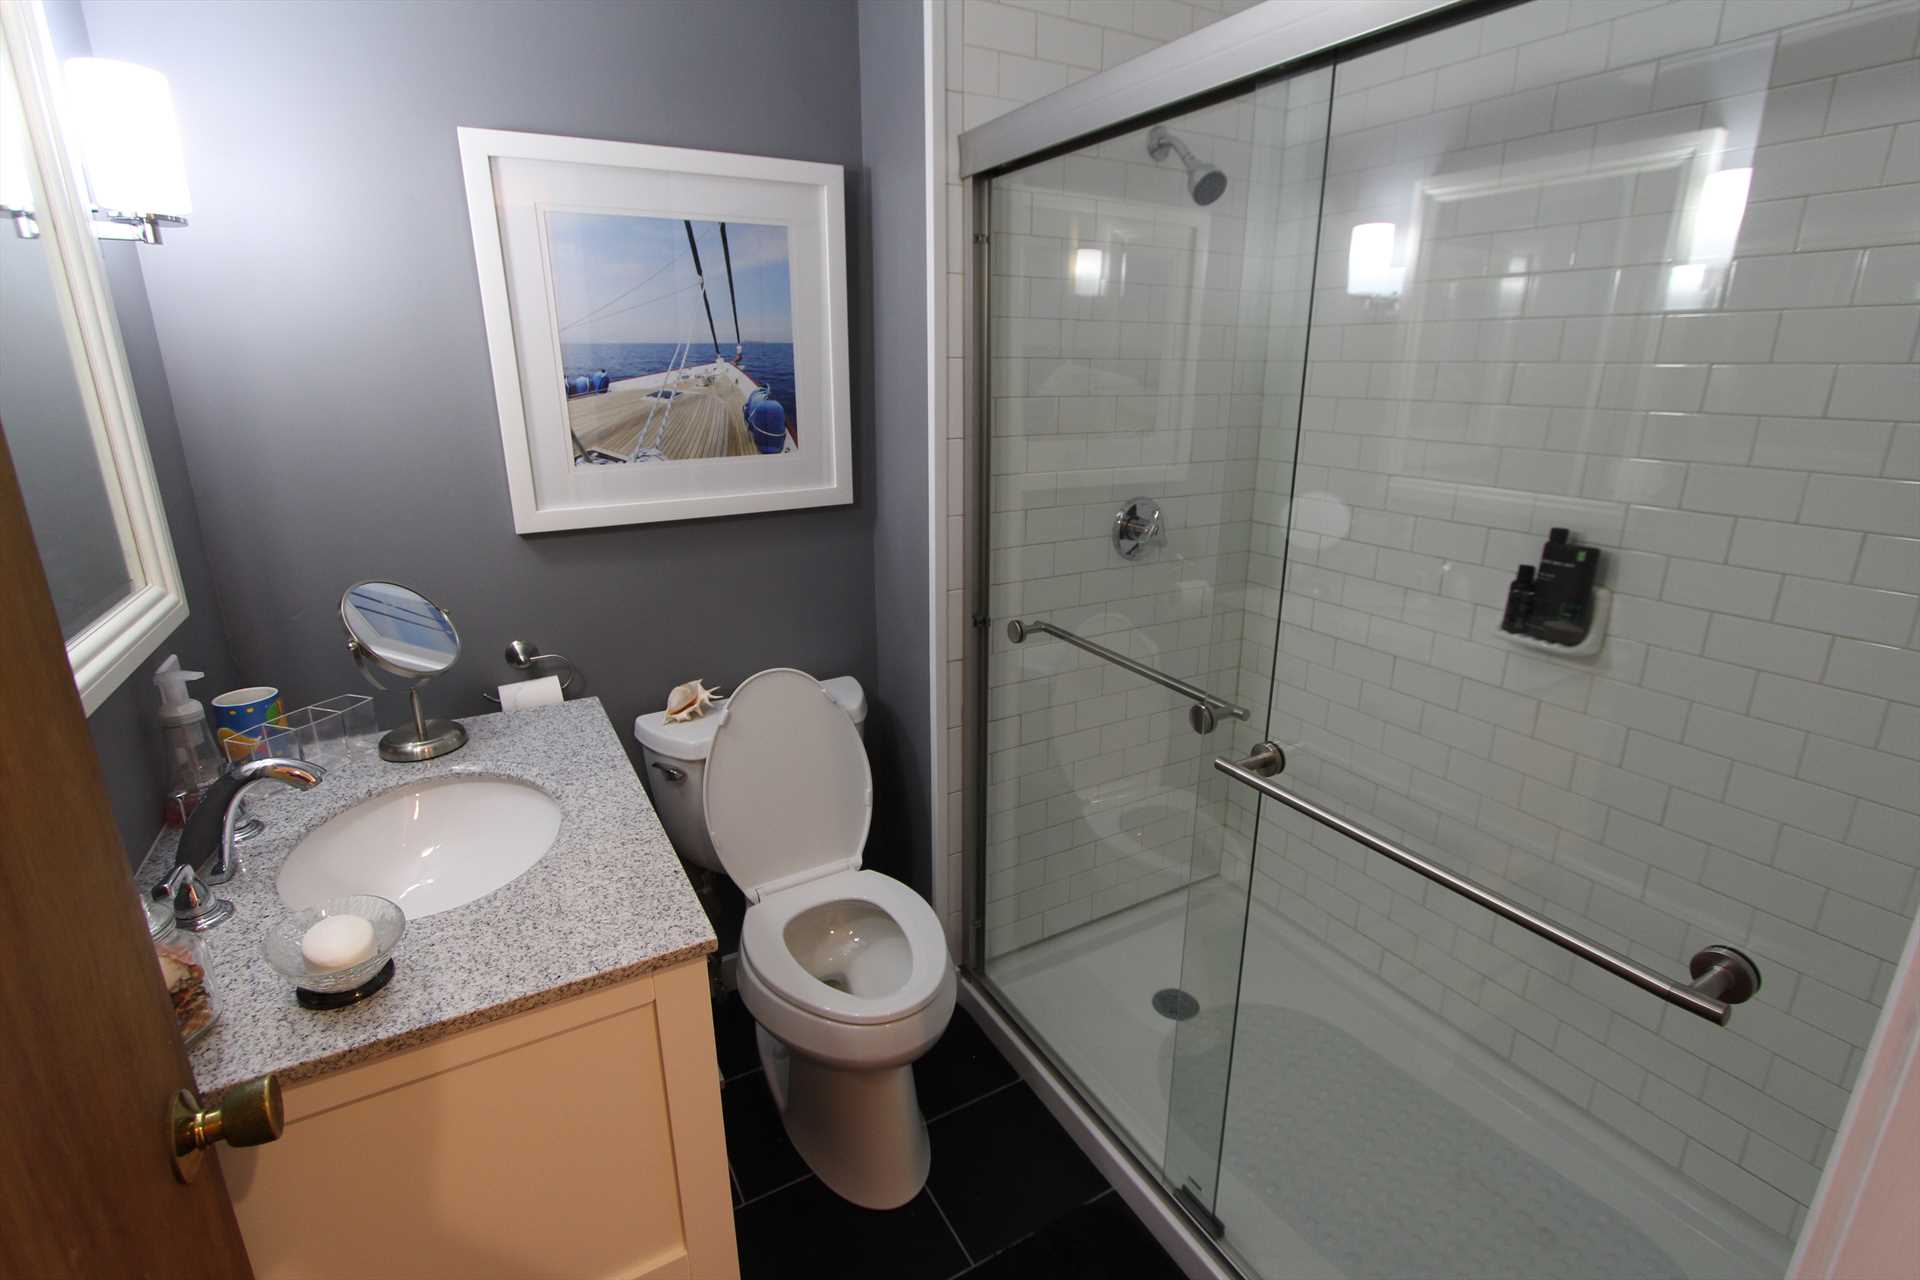 Bathroom on Main level - Shower only